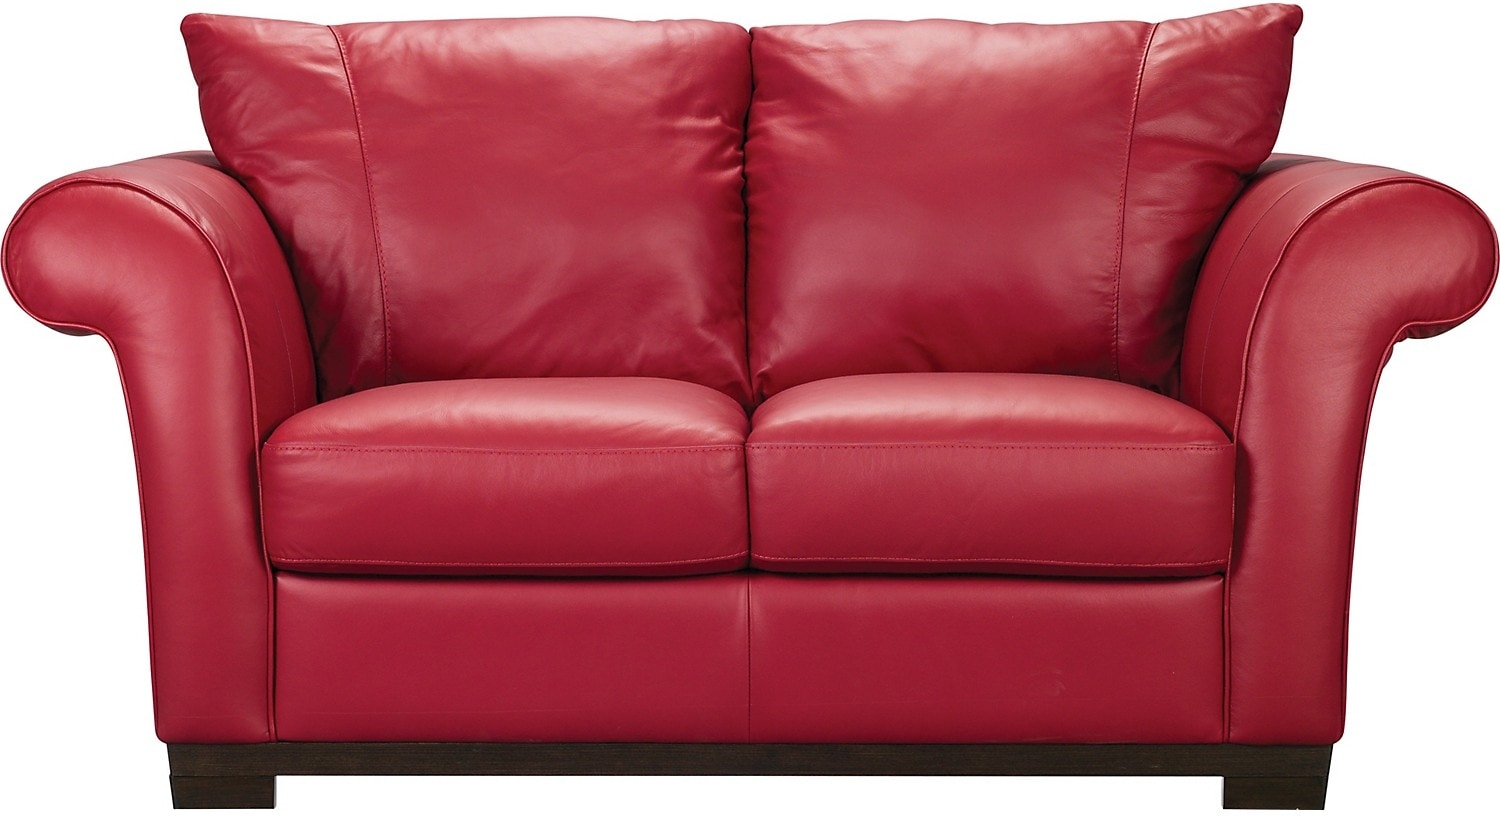 Layla Genuine Leather Loveseat – Red